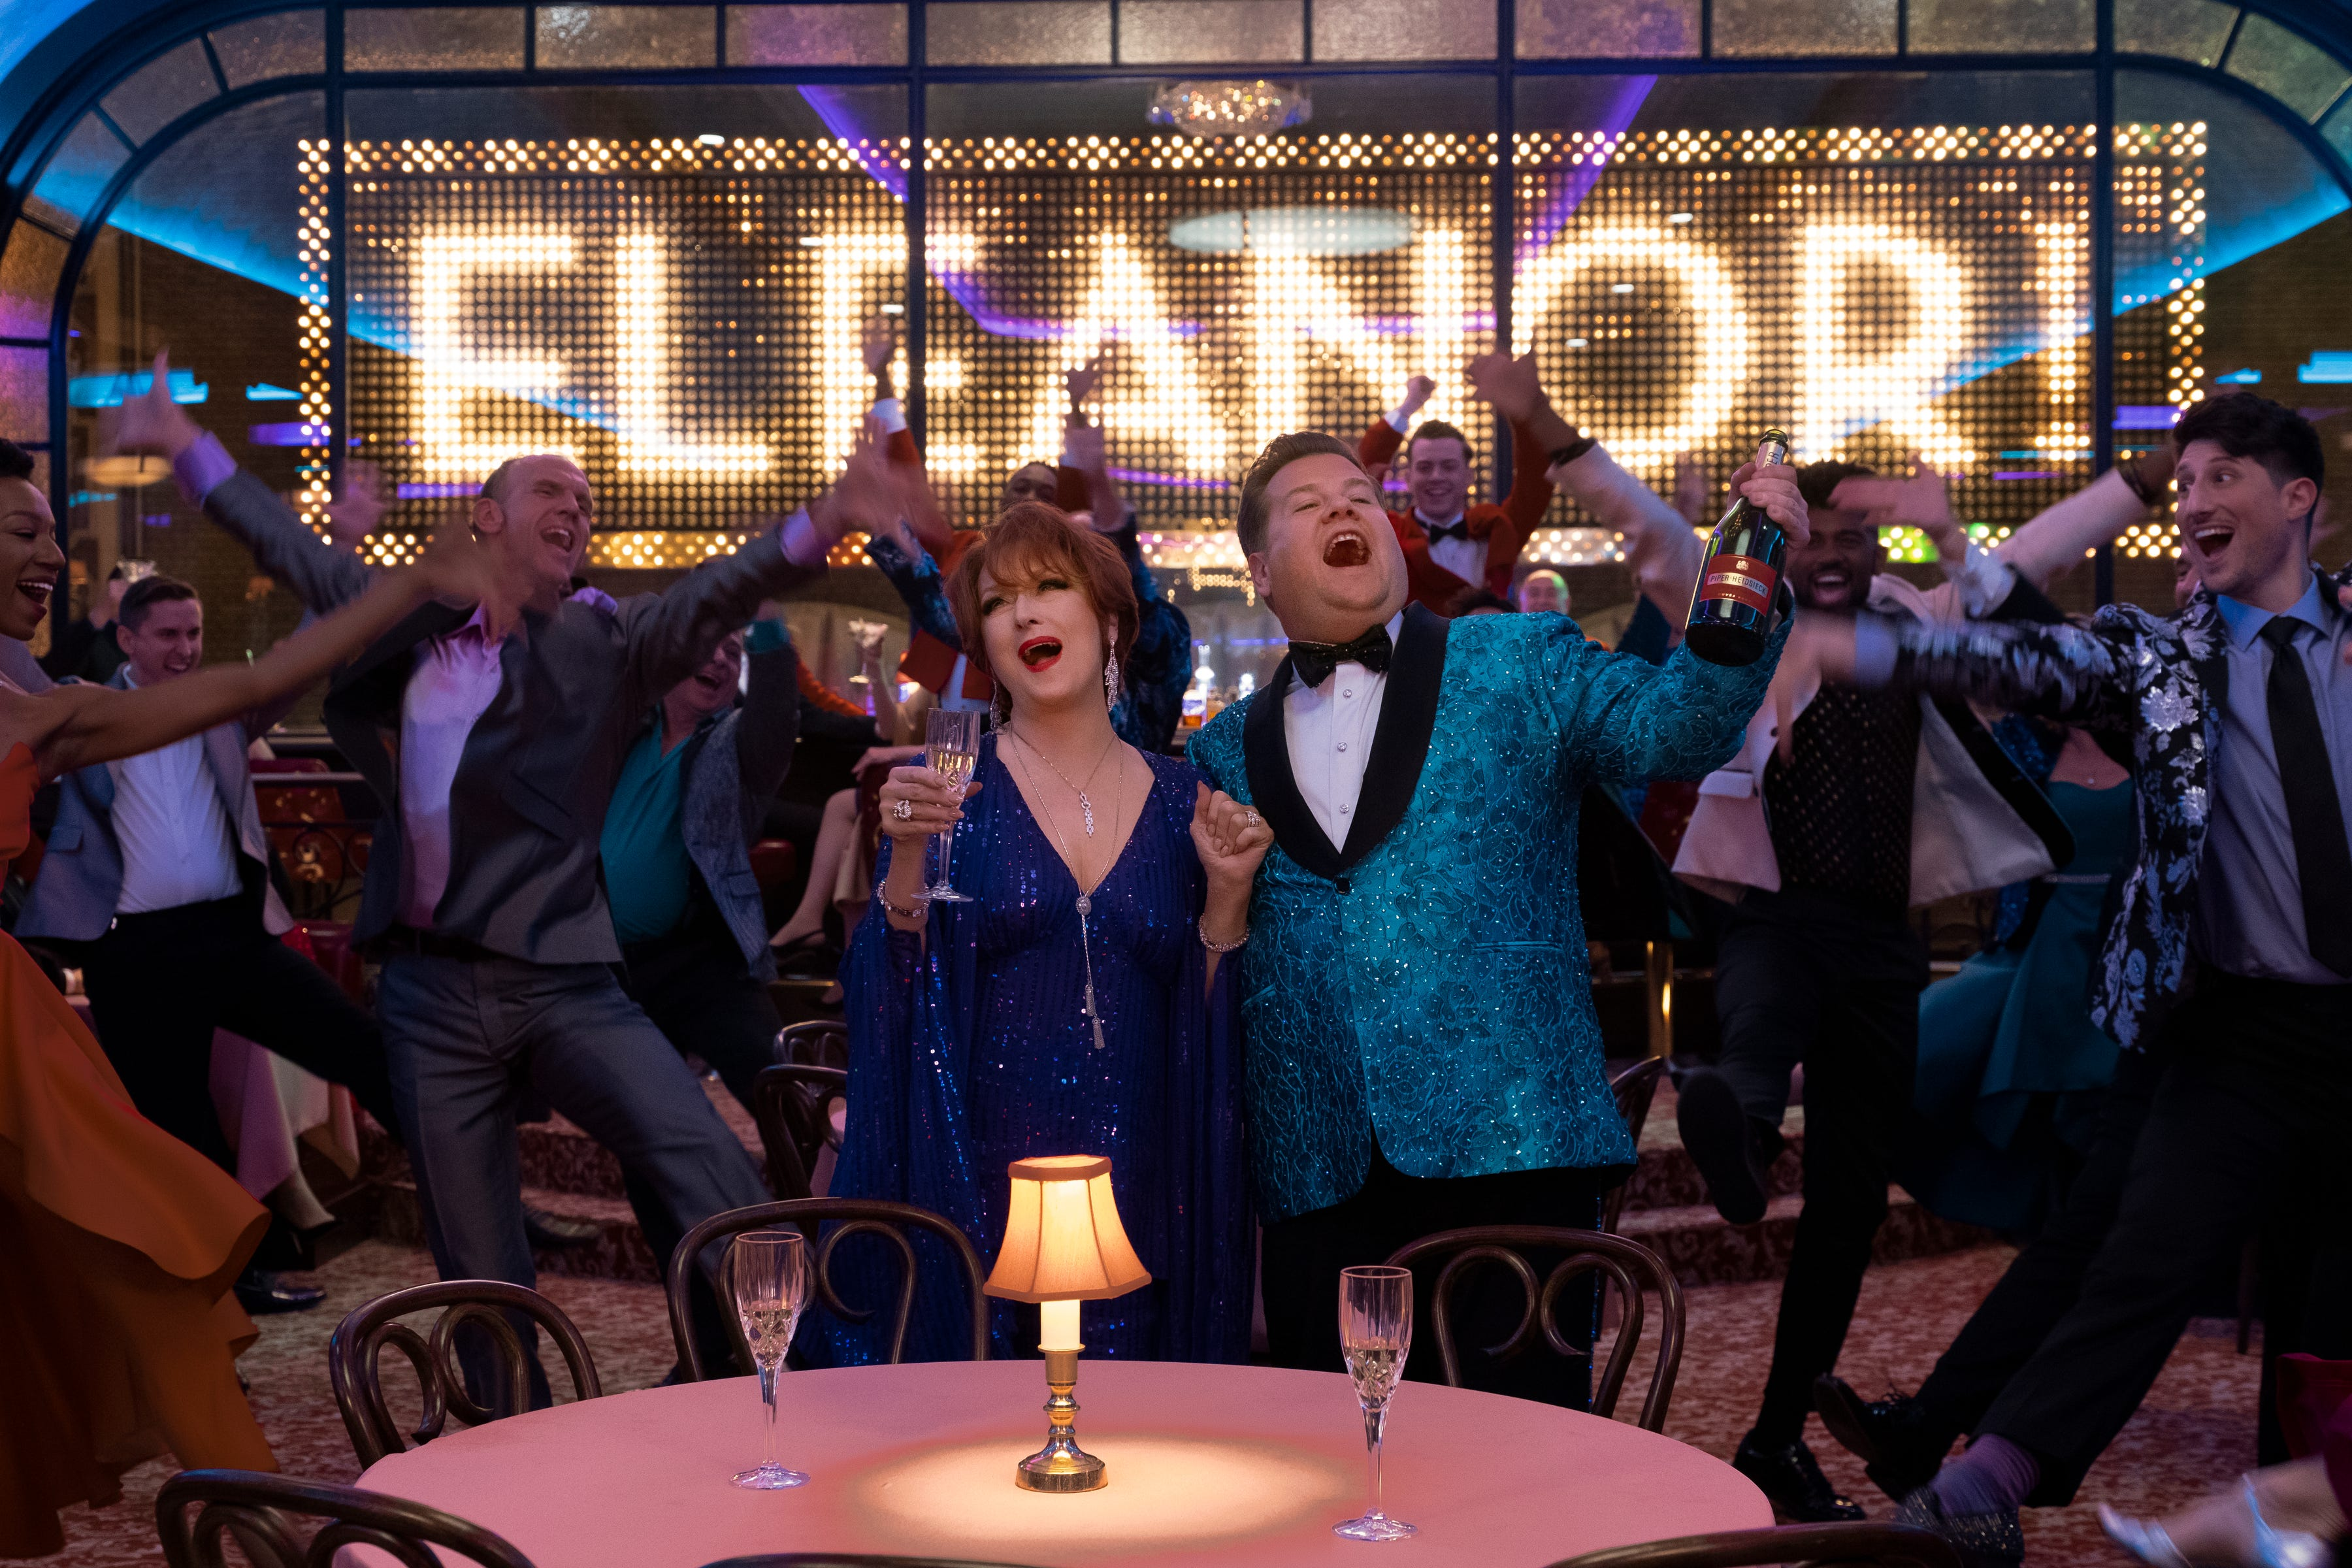 Meryl Streep and Nicole Kidman shine in  The Prom  on Netflix. James Corden, not so much